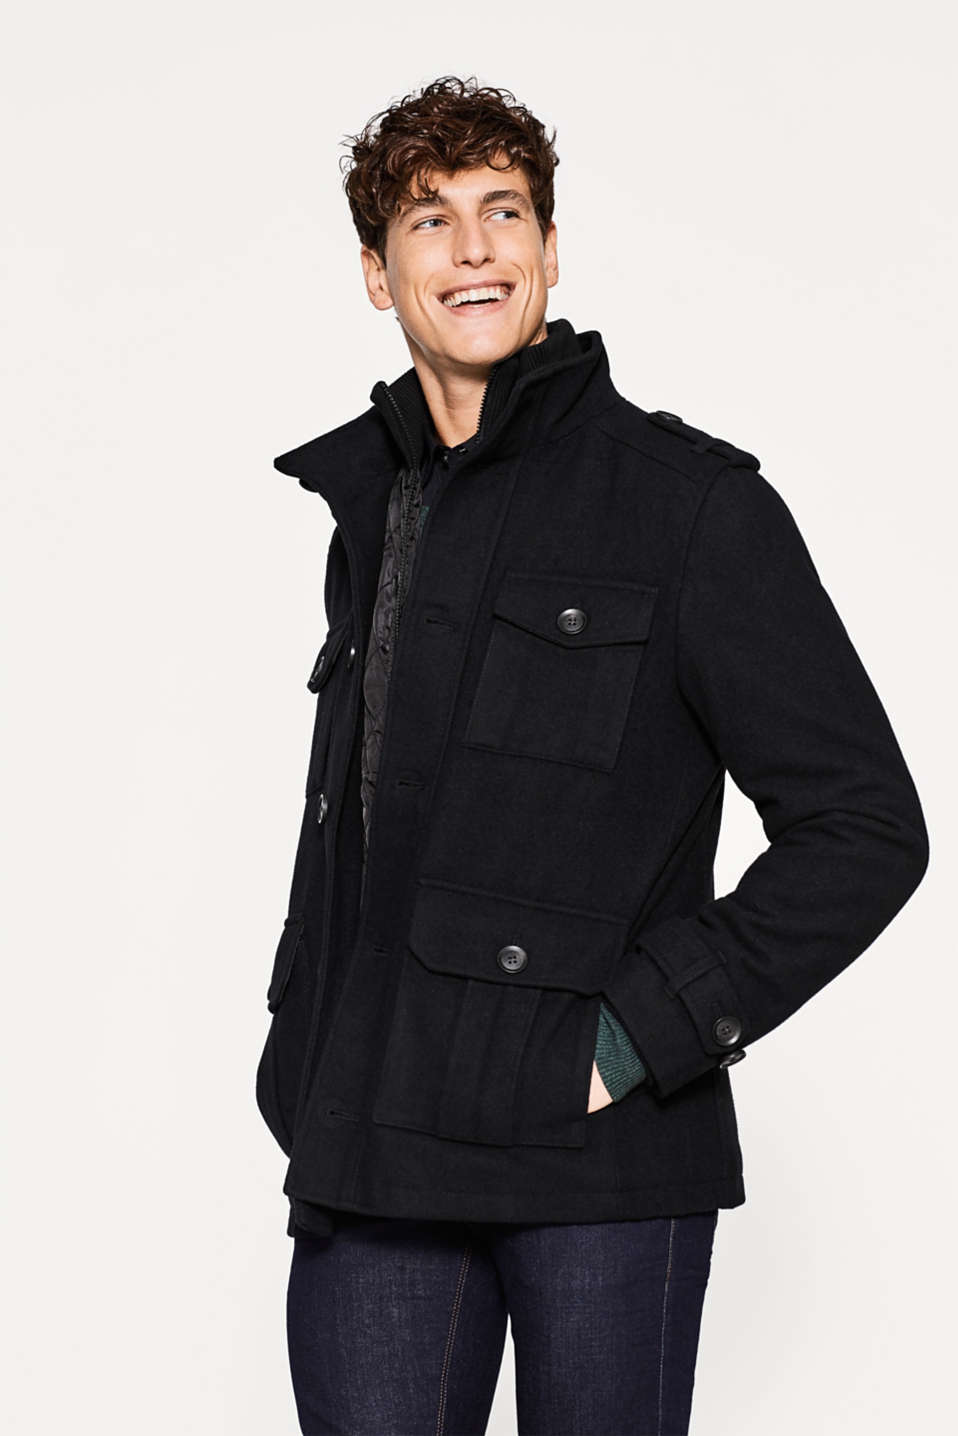 Esprit - Military jacket in a warm wool blend